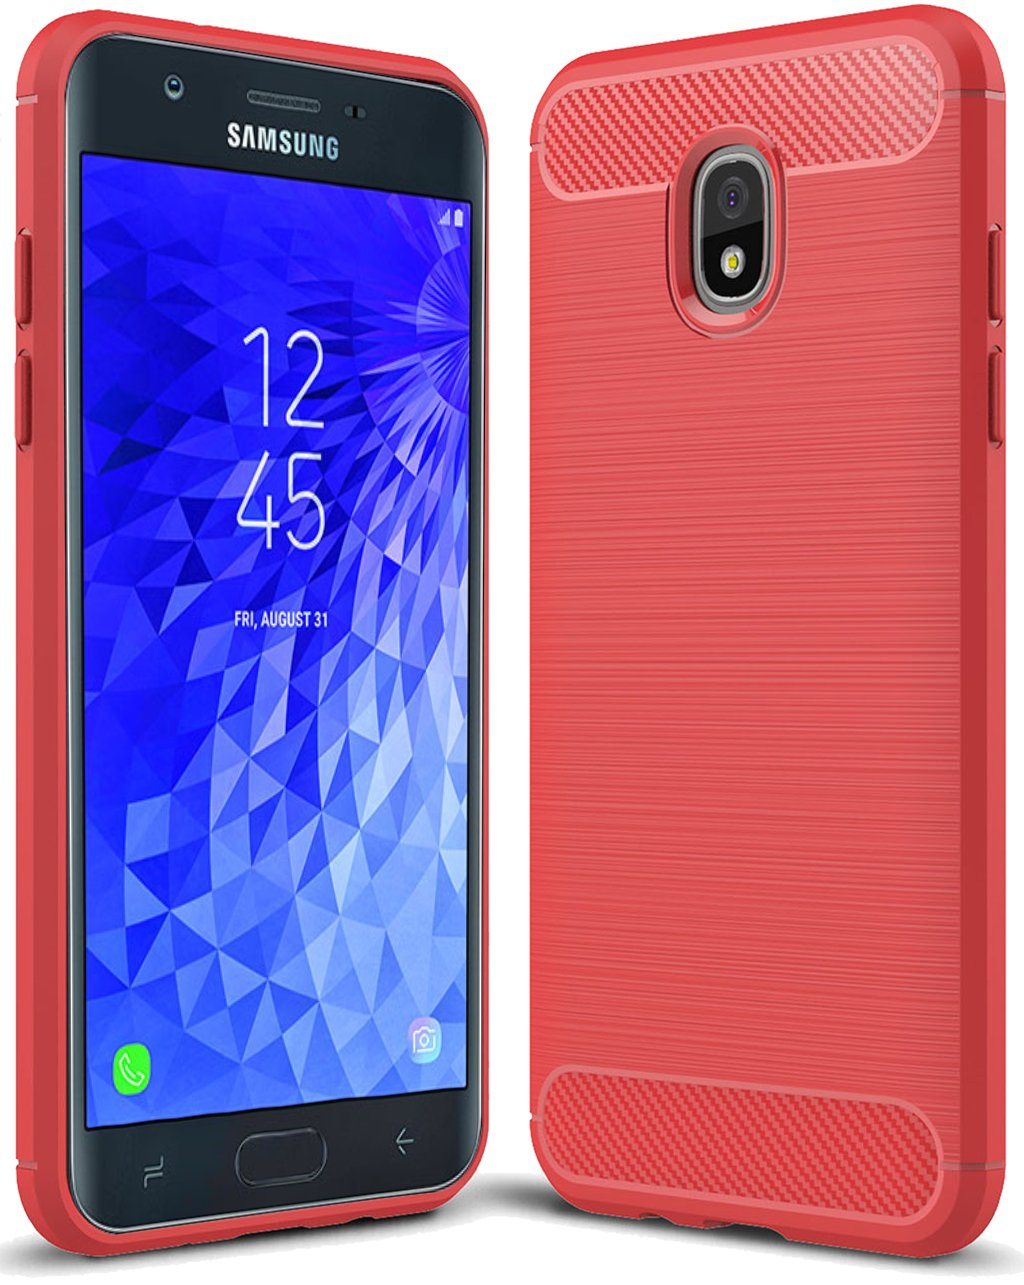 for Samsung Galaxy J7 2018 case, Galaxy J7 V 2nd Gen Case,Galaxy J7 Refine Case,Galaxy J7 Aero,J7 Star,J7 Top,J7 Crown,J7 Aura,J7 Eon,J737V,J737T Sucnakp TPU Protective Case Cover(Red)